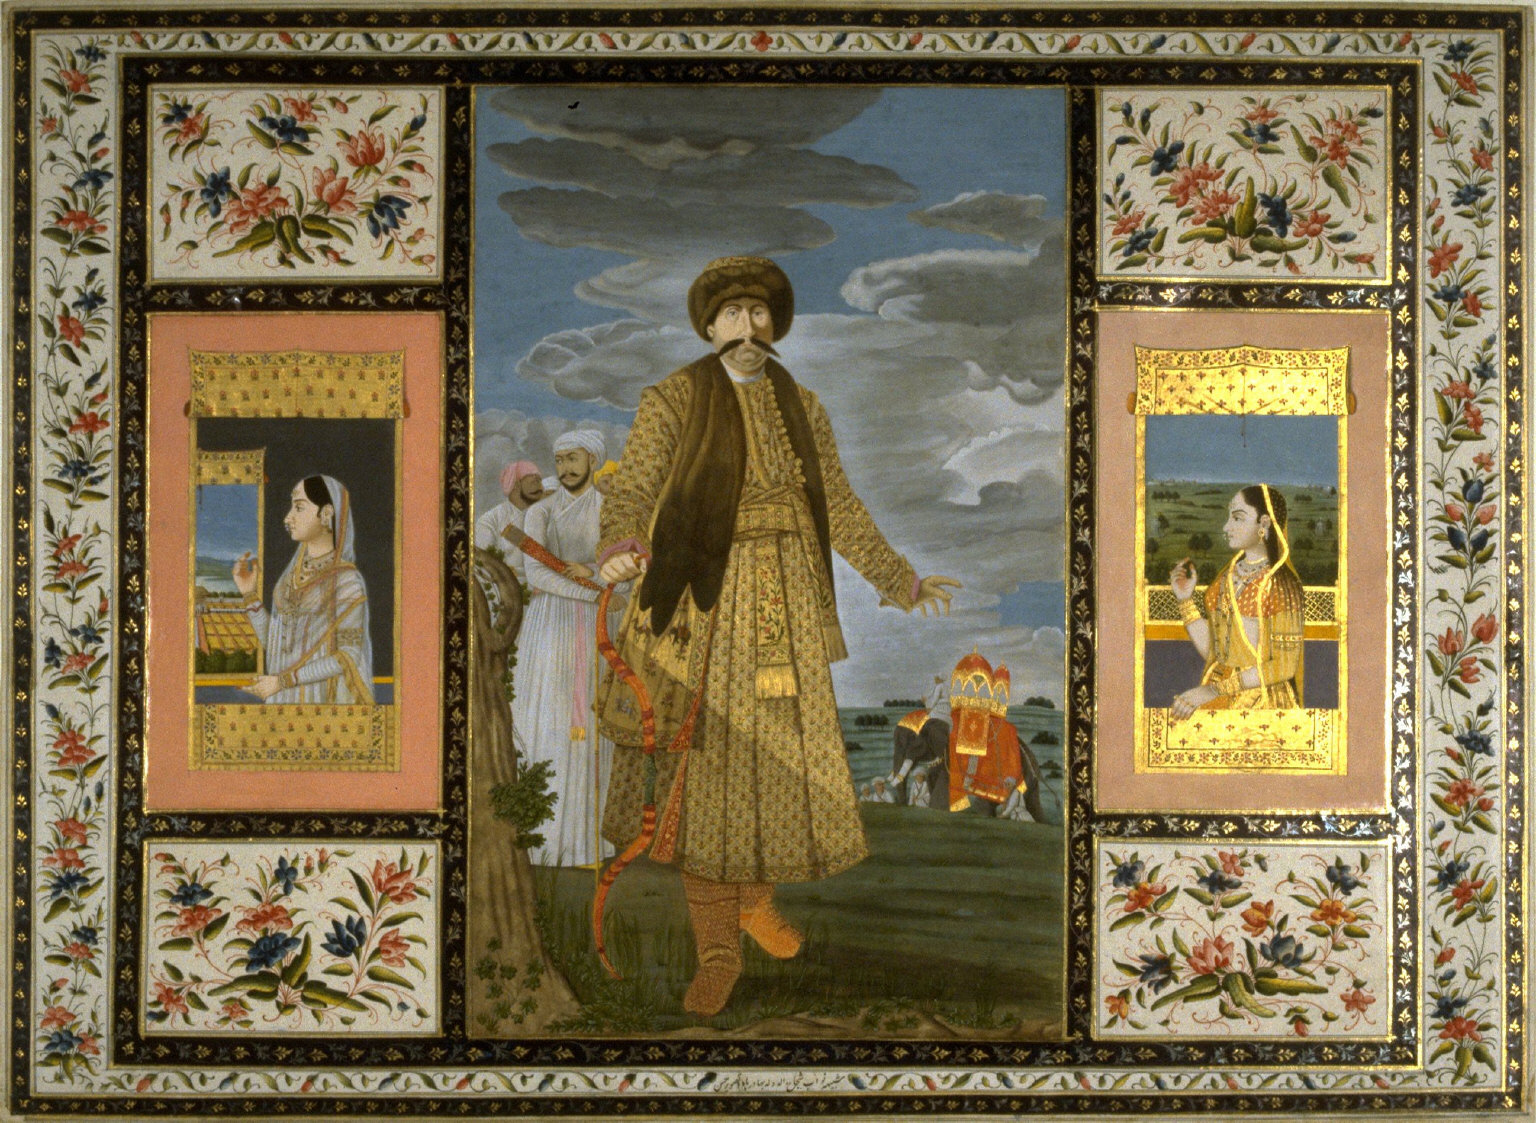 Portrait of Nawab Shuja-ud-Daula, after a portrait by Tilly Kettle, and Two Pictures of Beauty, a page from the Lady Coote Album